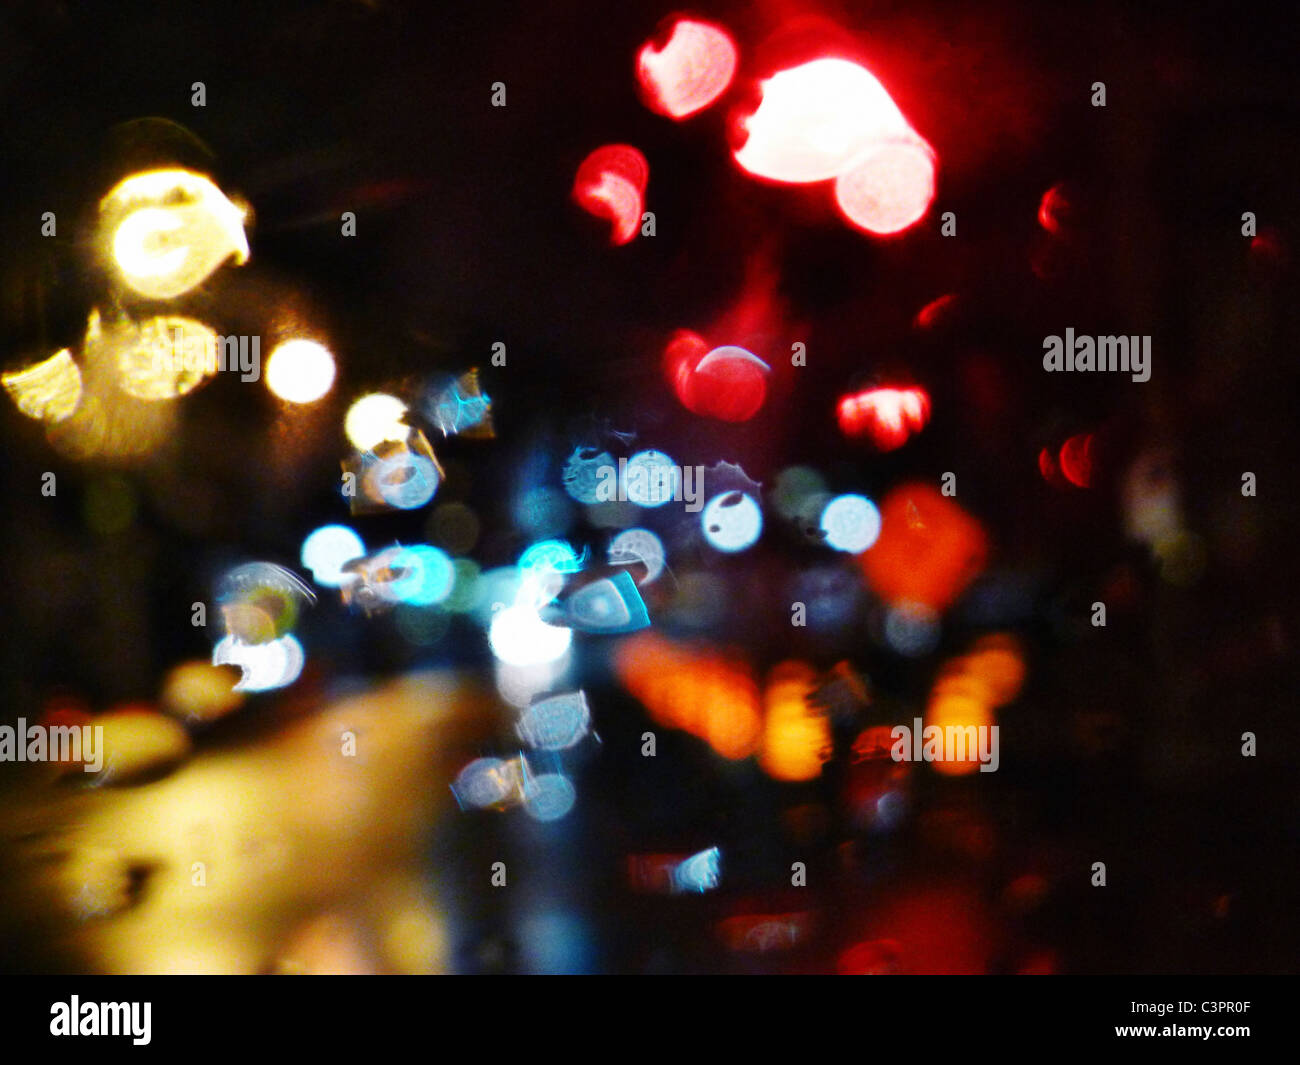 Blurry specular street lights at night. - Stock Image